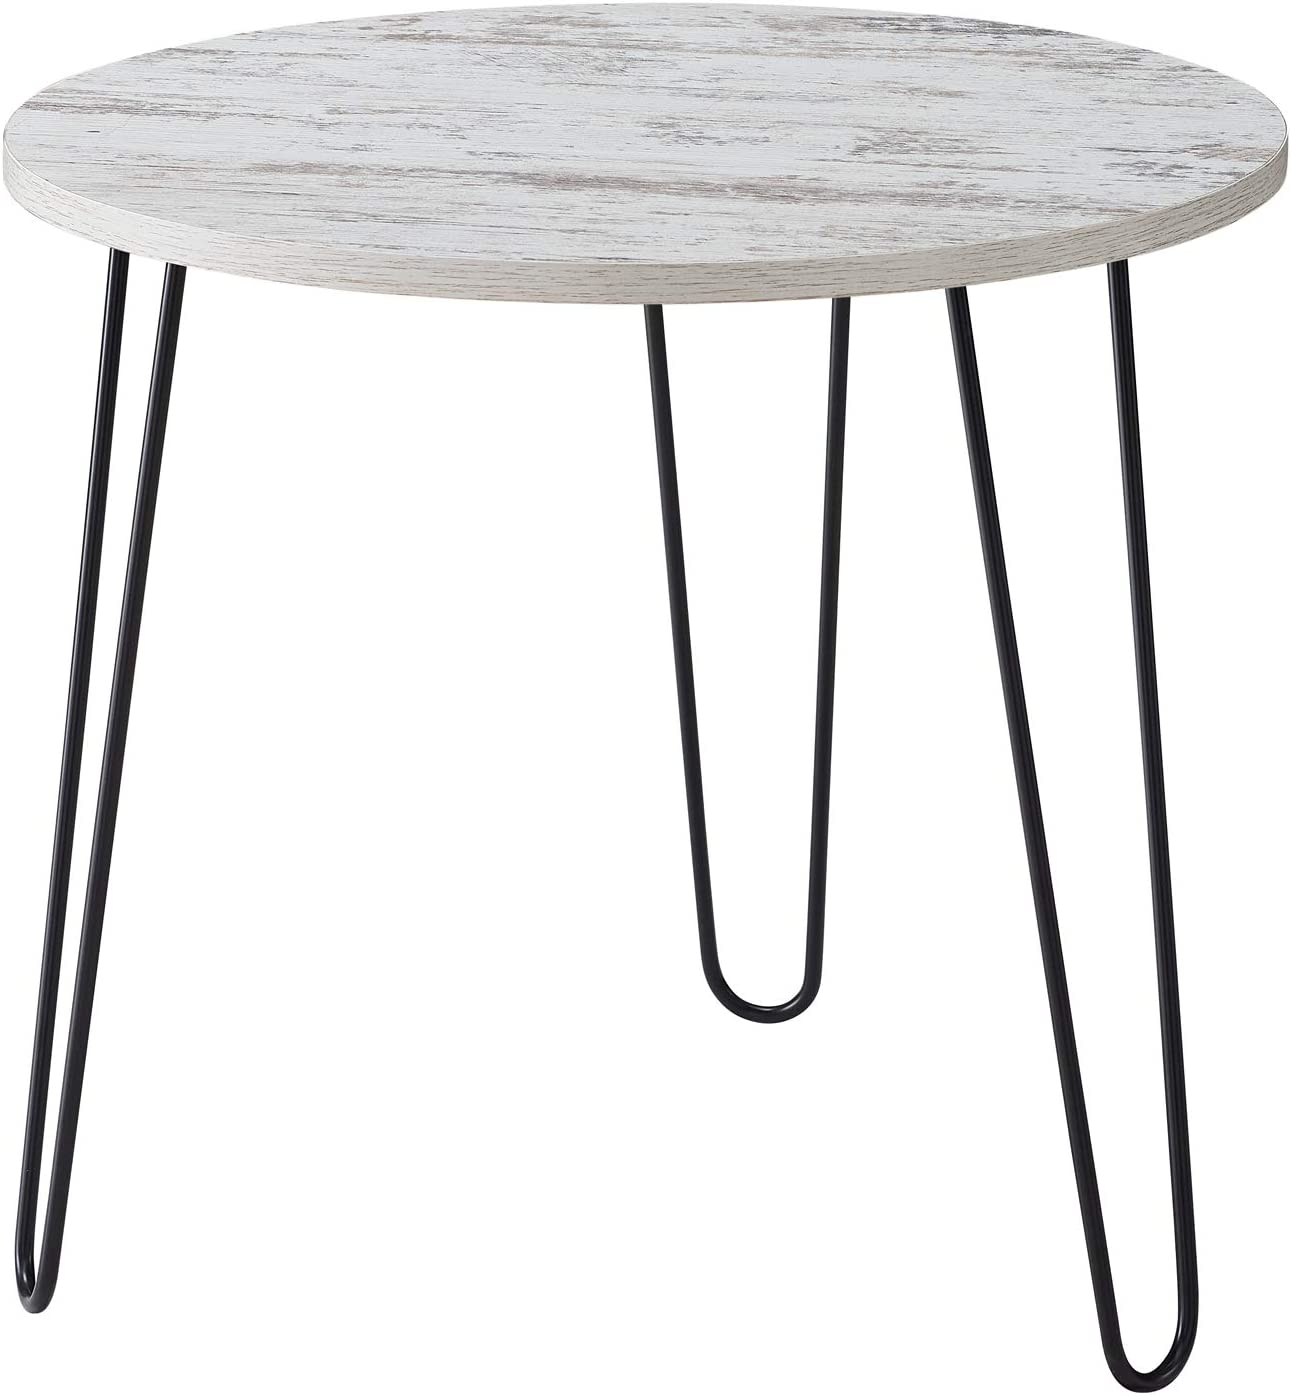 Classic Brands A01132-1352 Asher End Table Without Tray-Distressed White